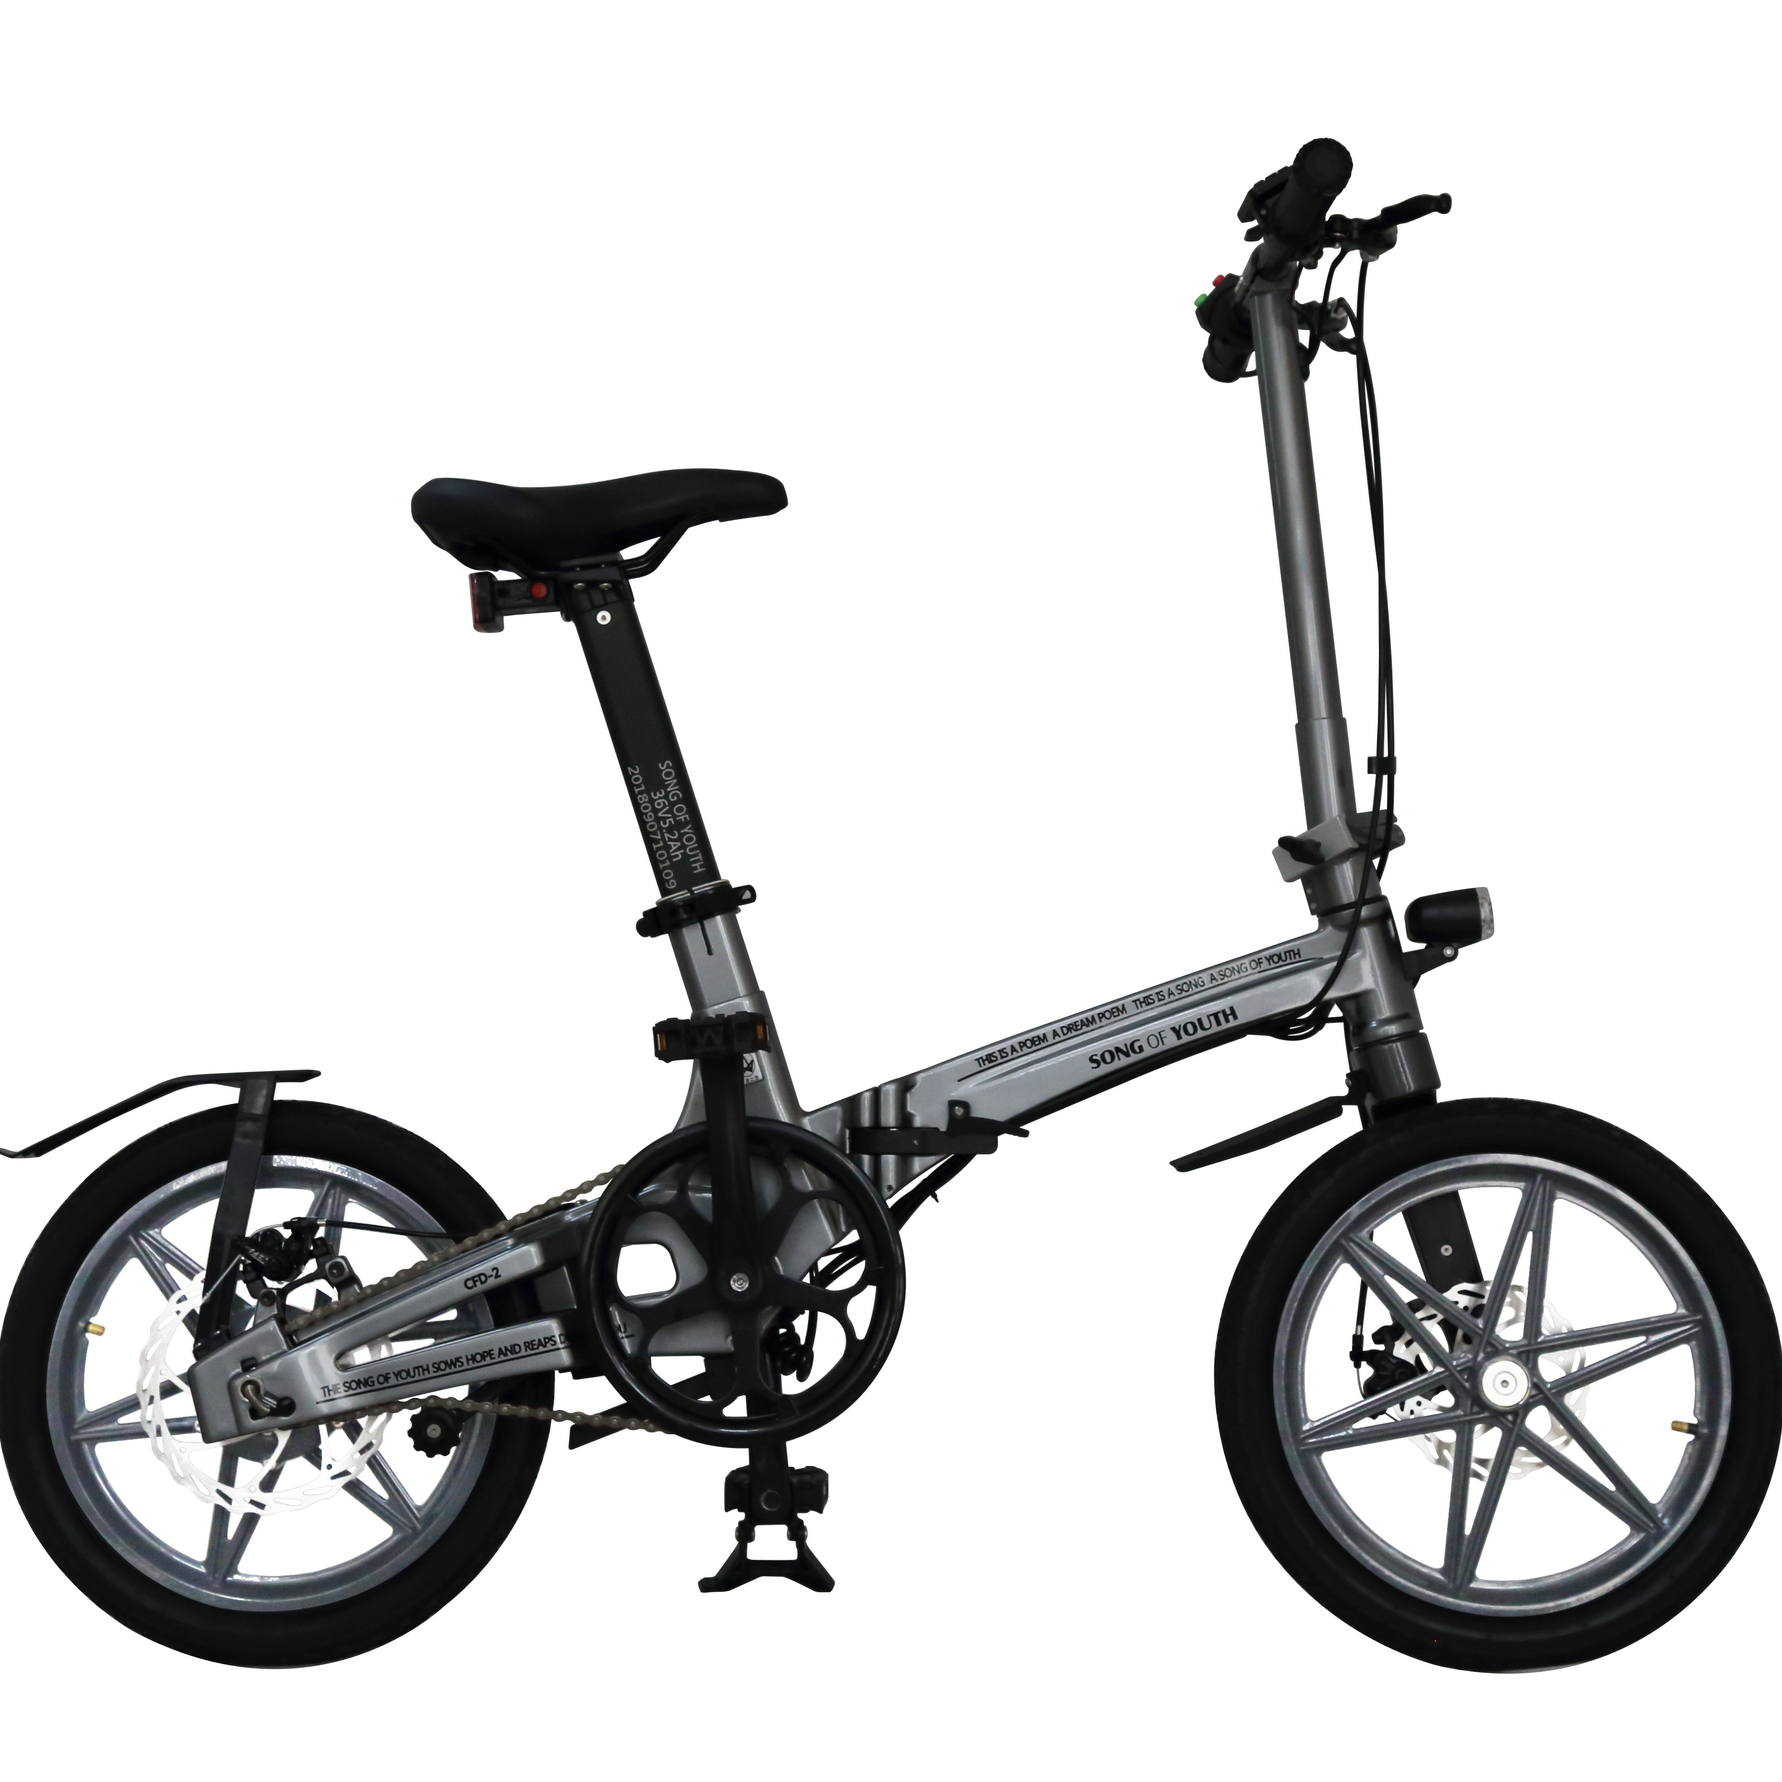 16 inch hot sale modern design CE certificate electrical folding e-bike for city casual use